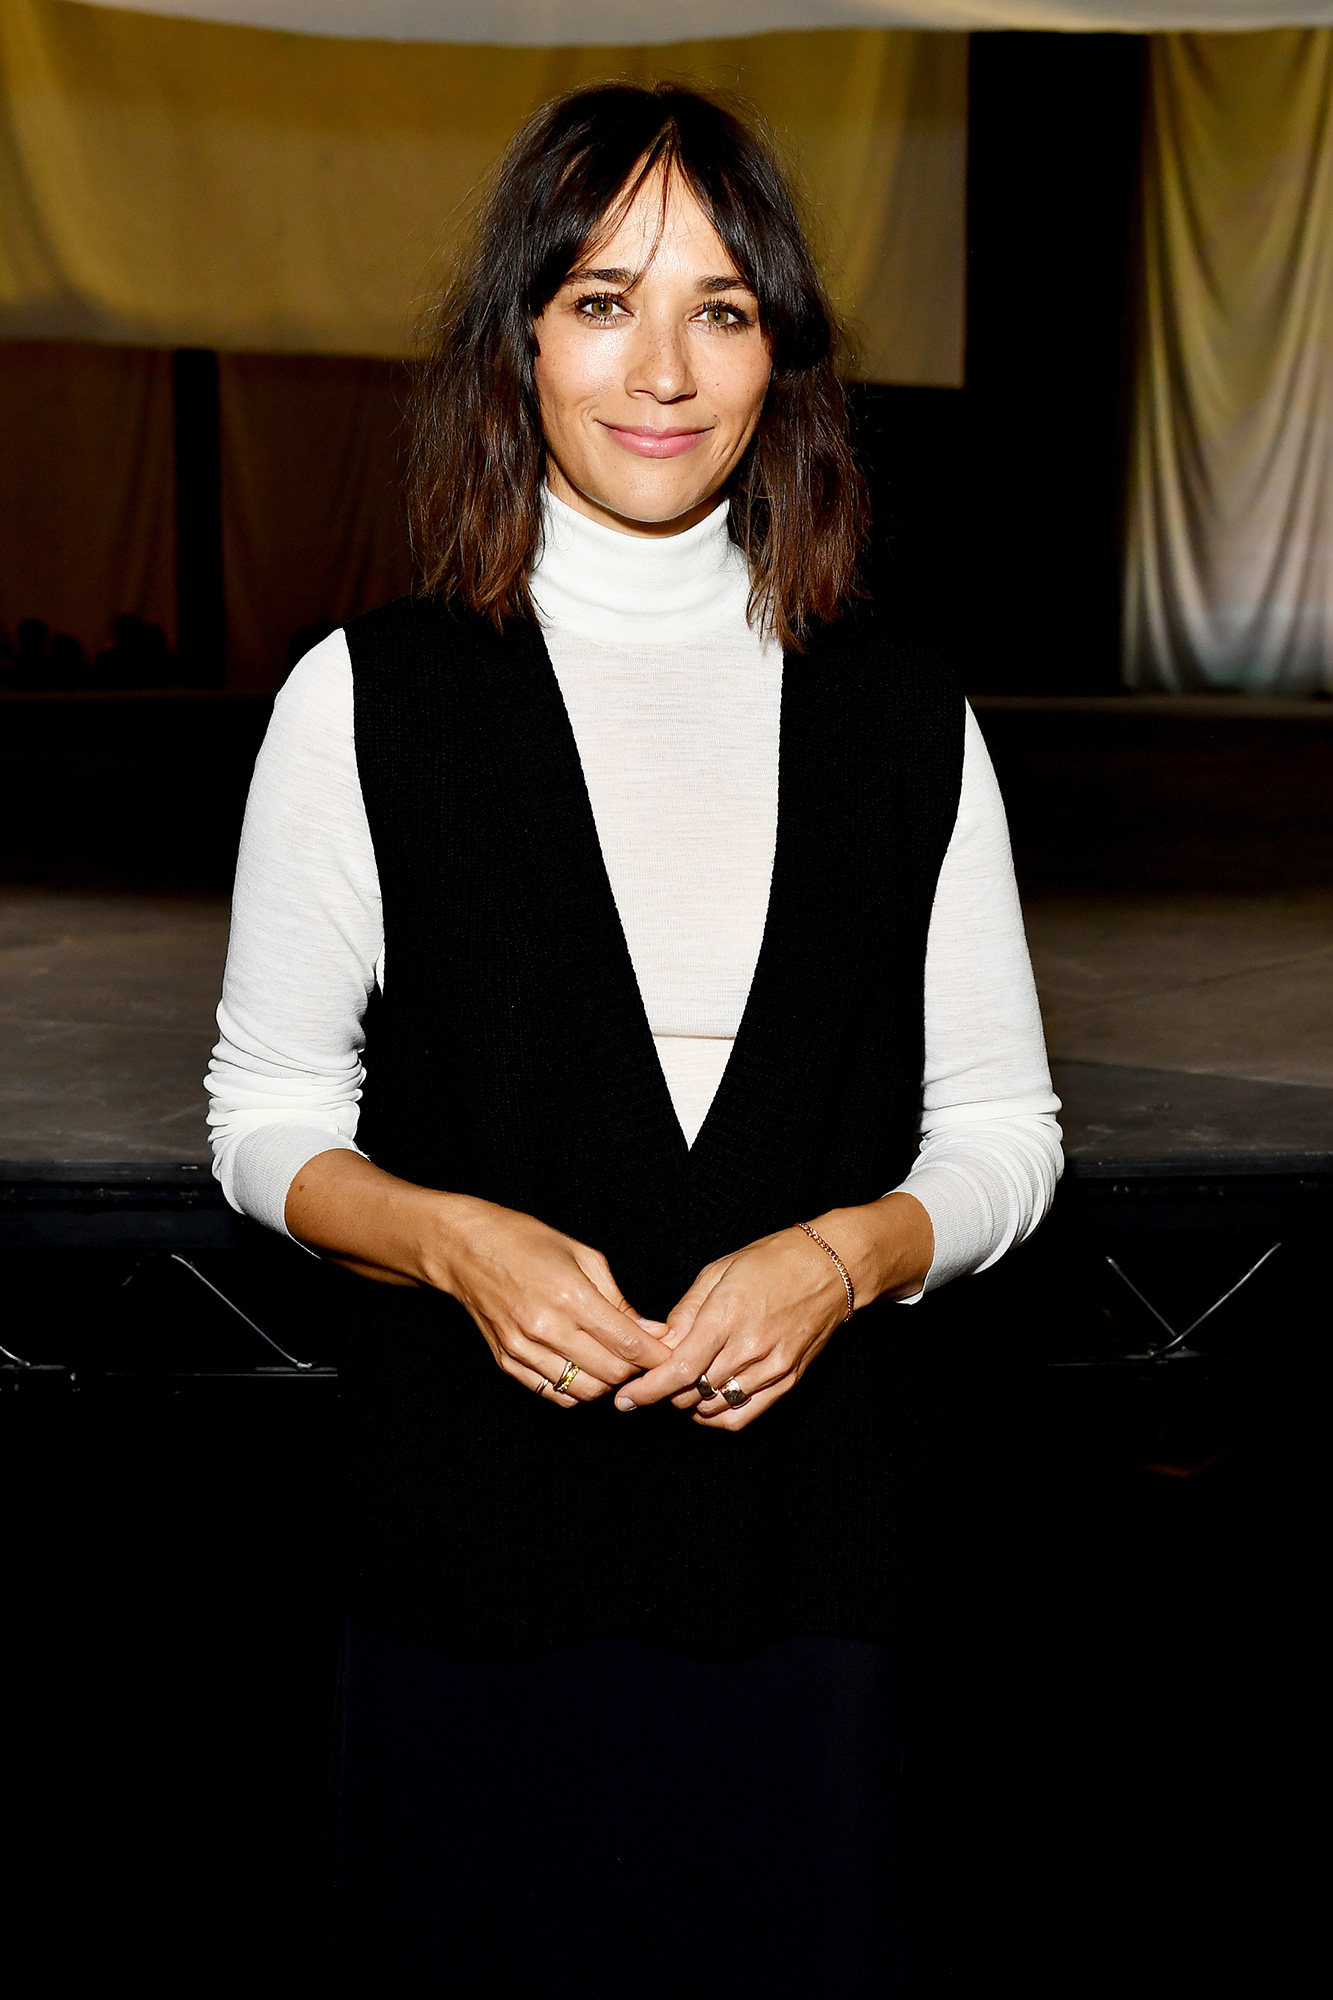 Rashida Jones attends the COS show at The Roundhouse during London Fashion Week September 2021 on September 21, 2021 in London, England.